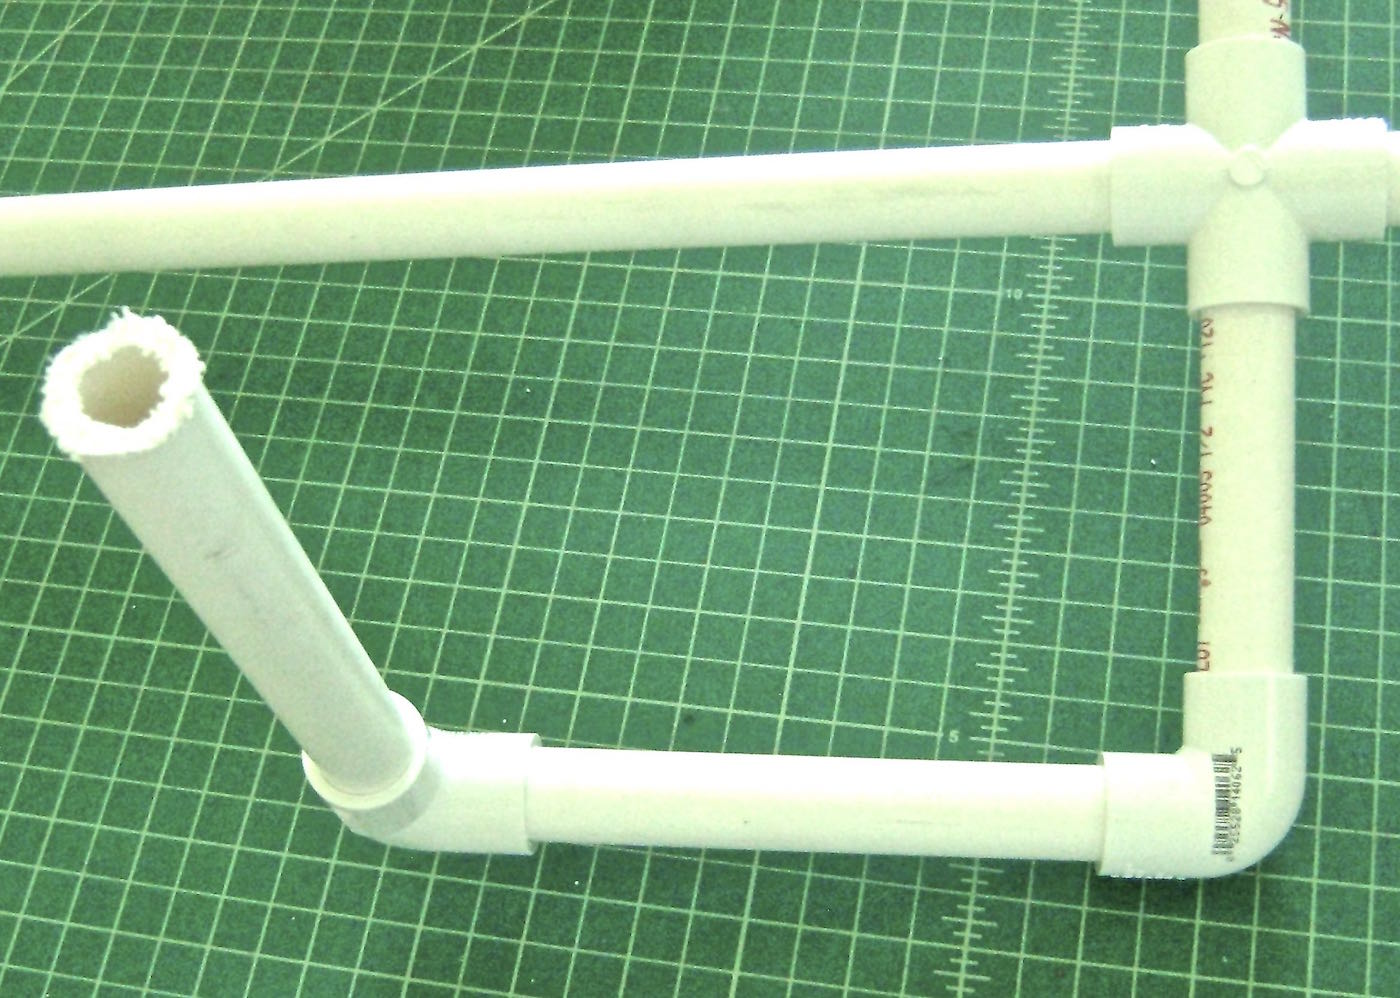 step 7 - Use elbow connectors to attach the arms.  They will allow you to position the upper and lower arms.